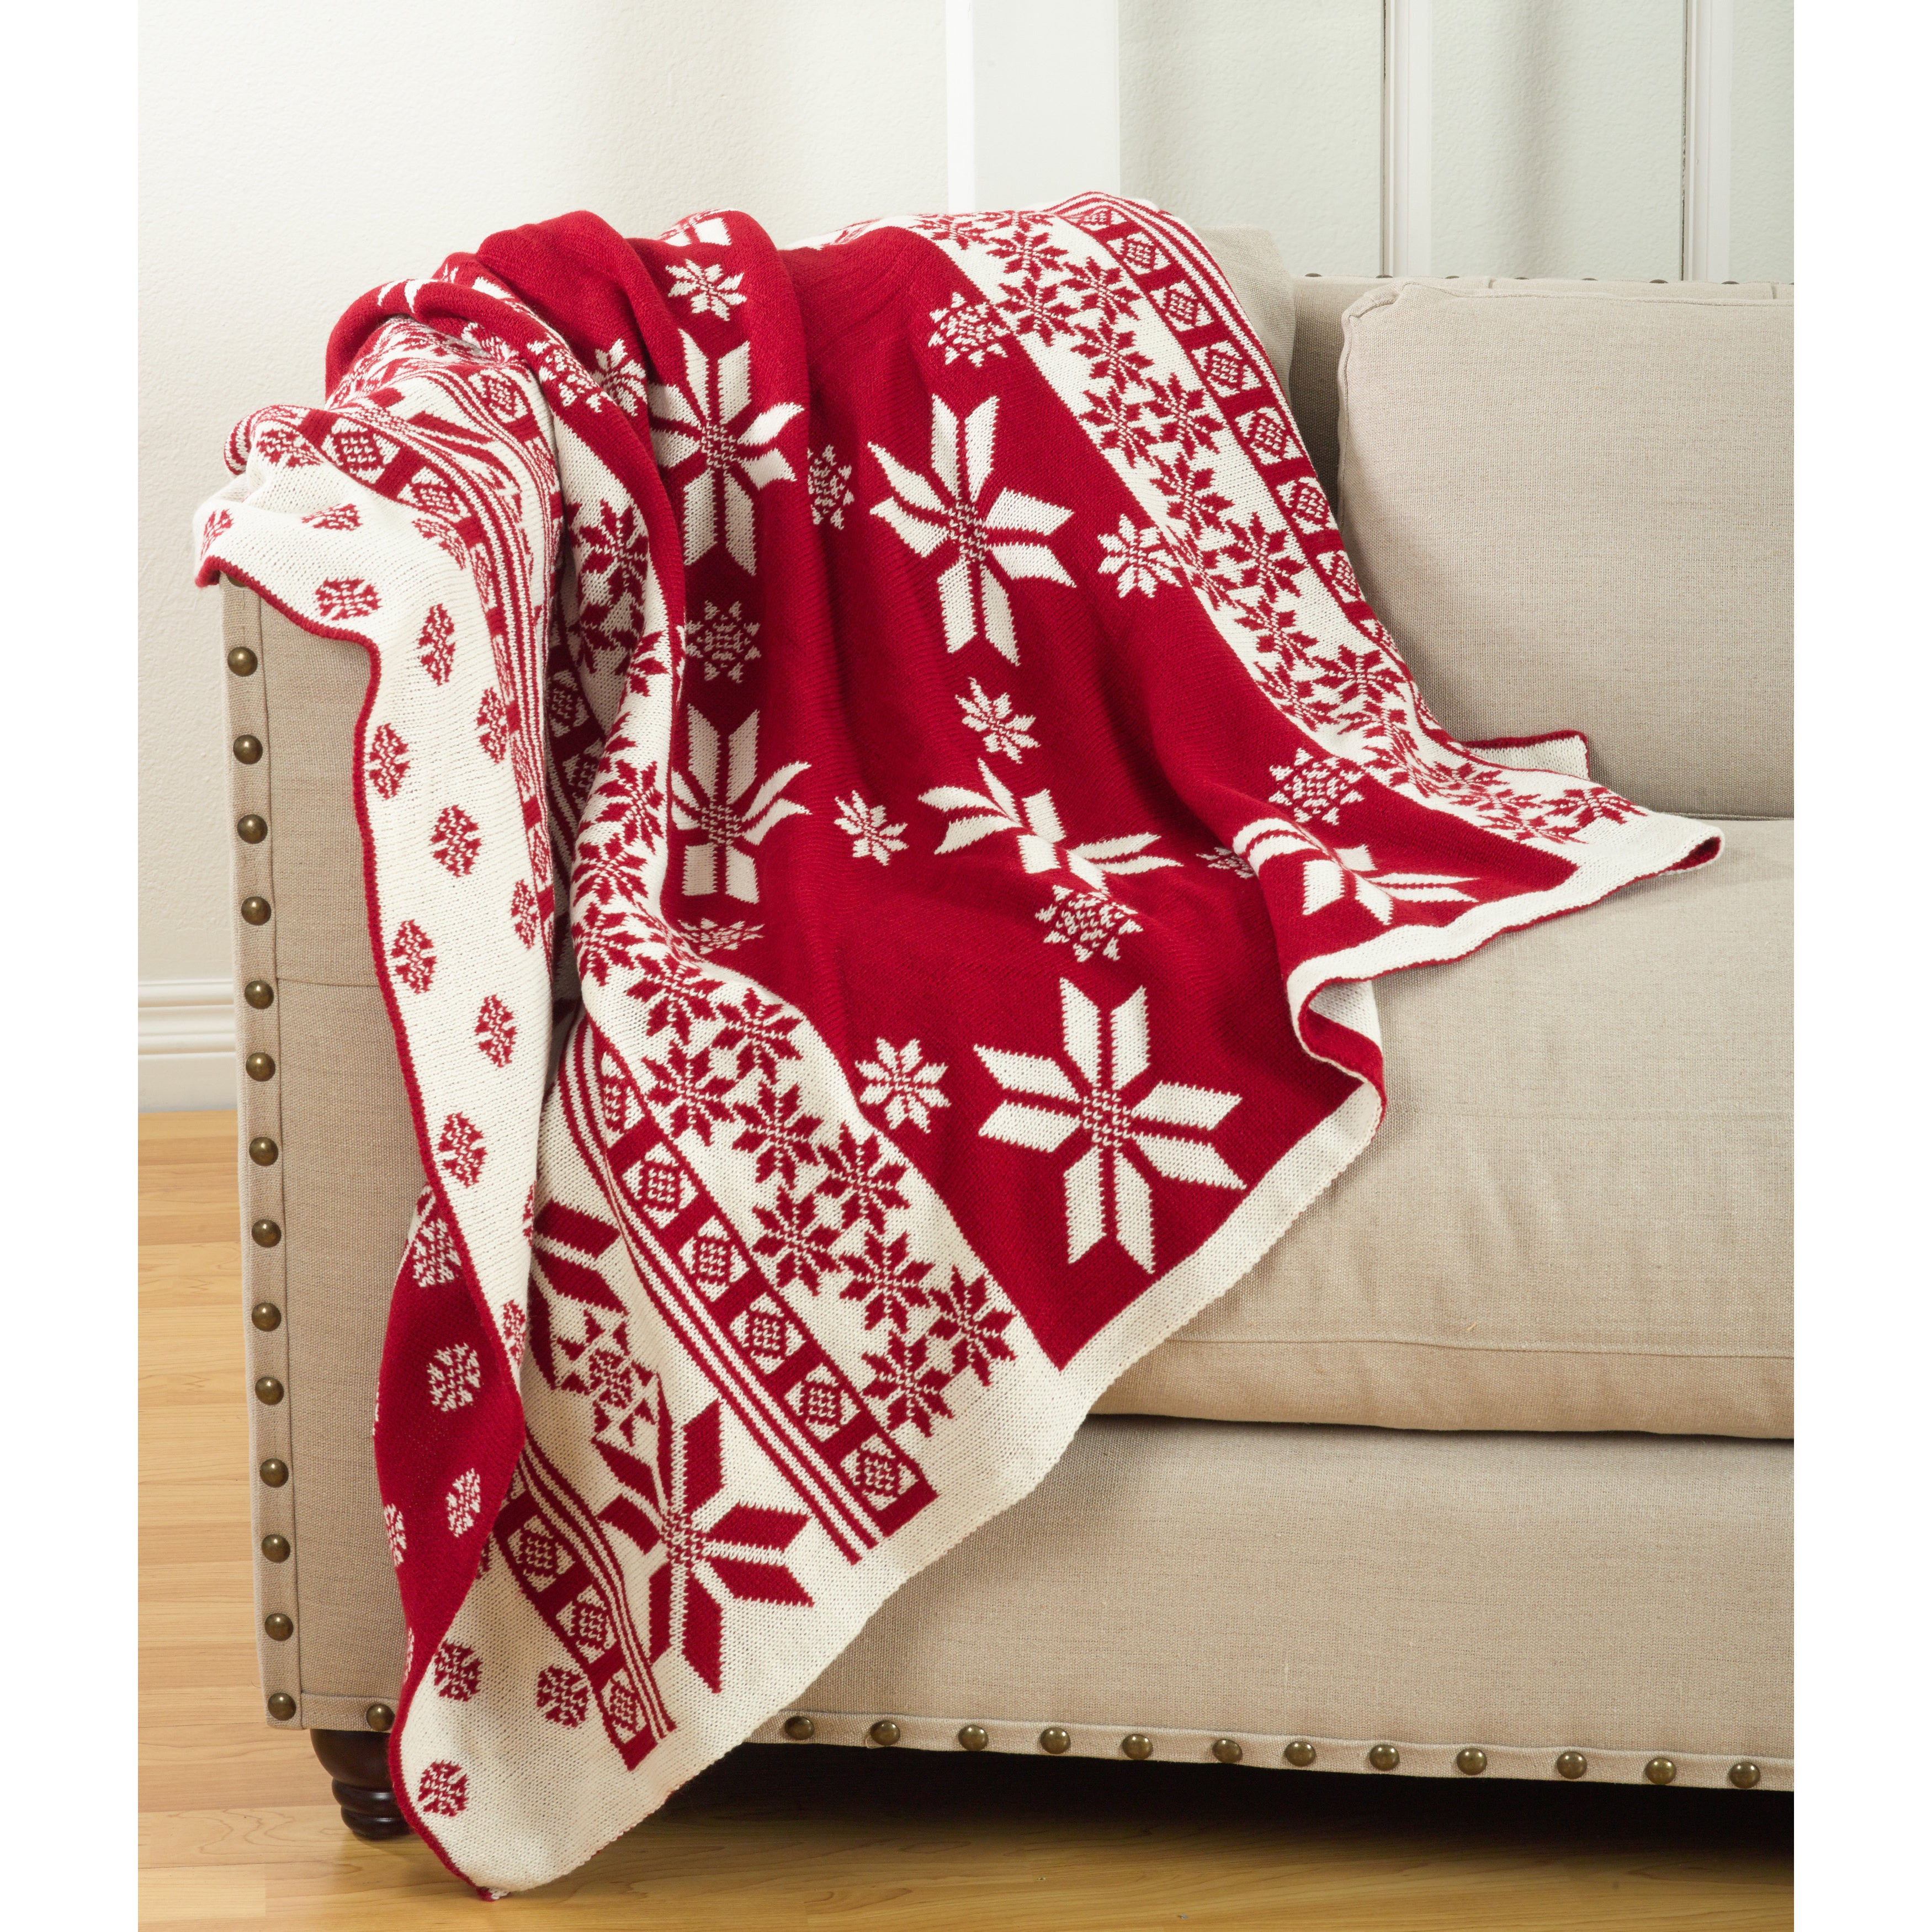 Christmas Blankets.Sevan Collection Knitted Christmas Design Throw Blanket